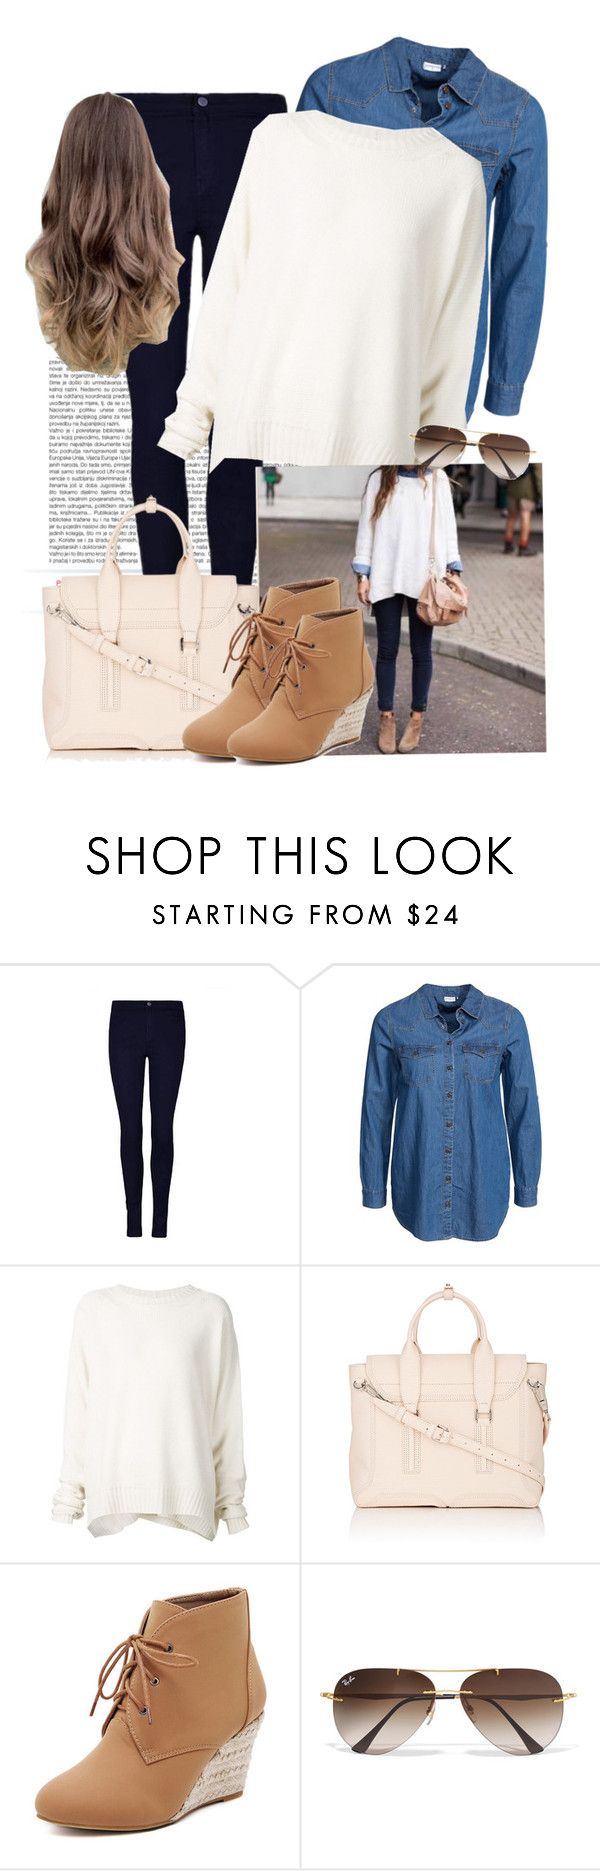 """""""Smart casual"""" by aatkins ❤ liked on Polyvore featuring Jacqueline De Yong, URBAN ZEN, 3.1 Phillip Lim, WithChic, Ray-Ban, women's clothing, women, female, woman and misses"""